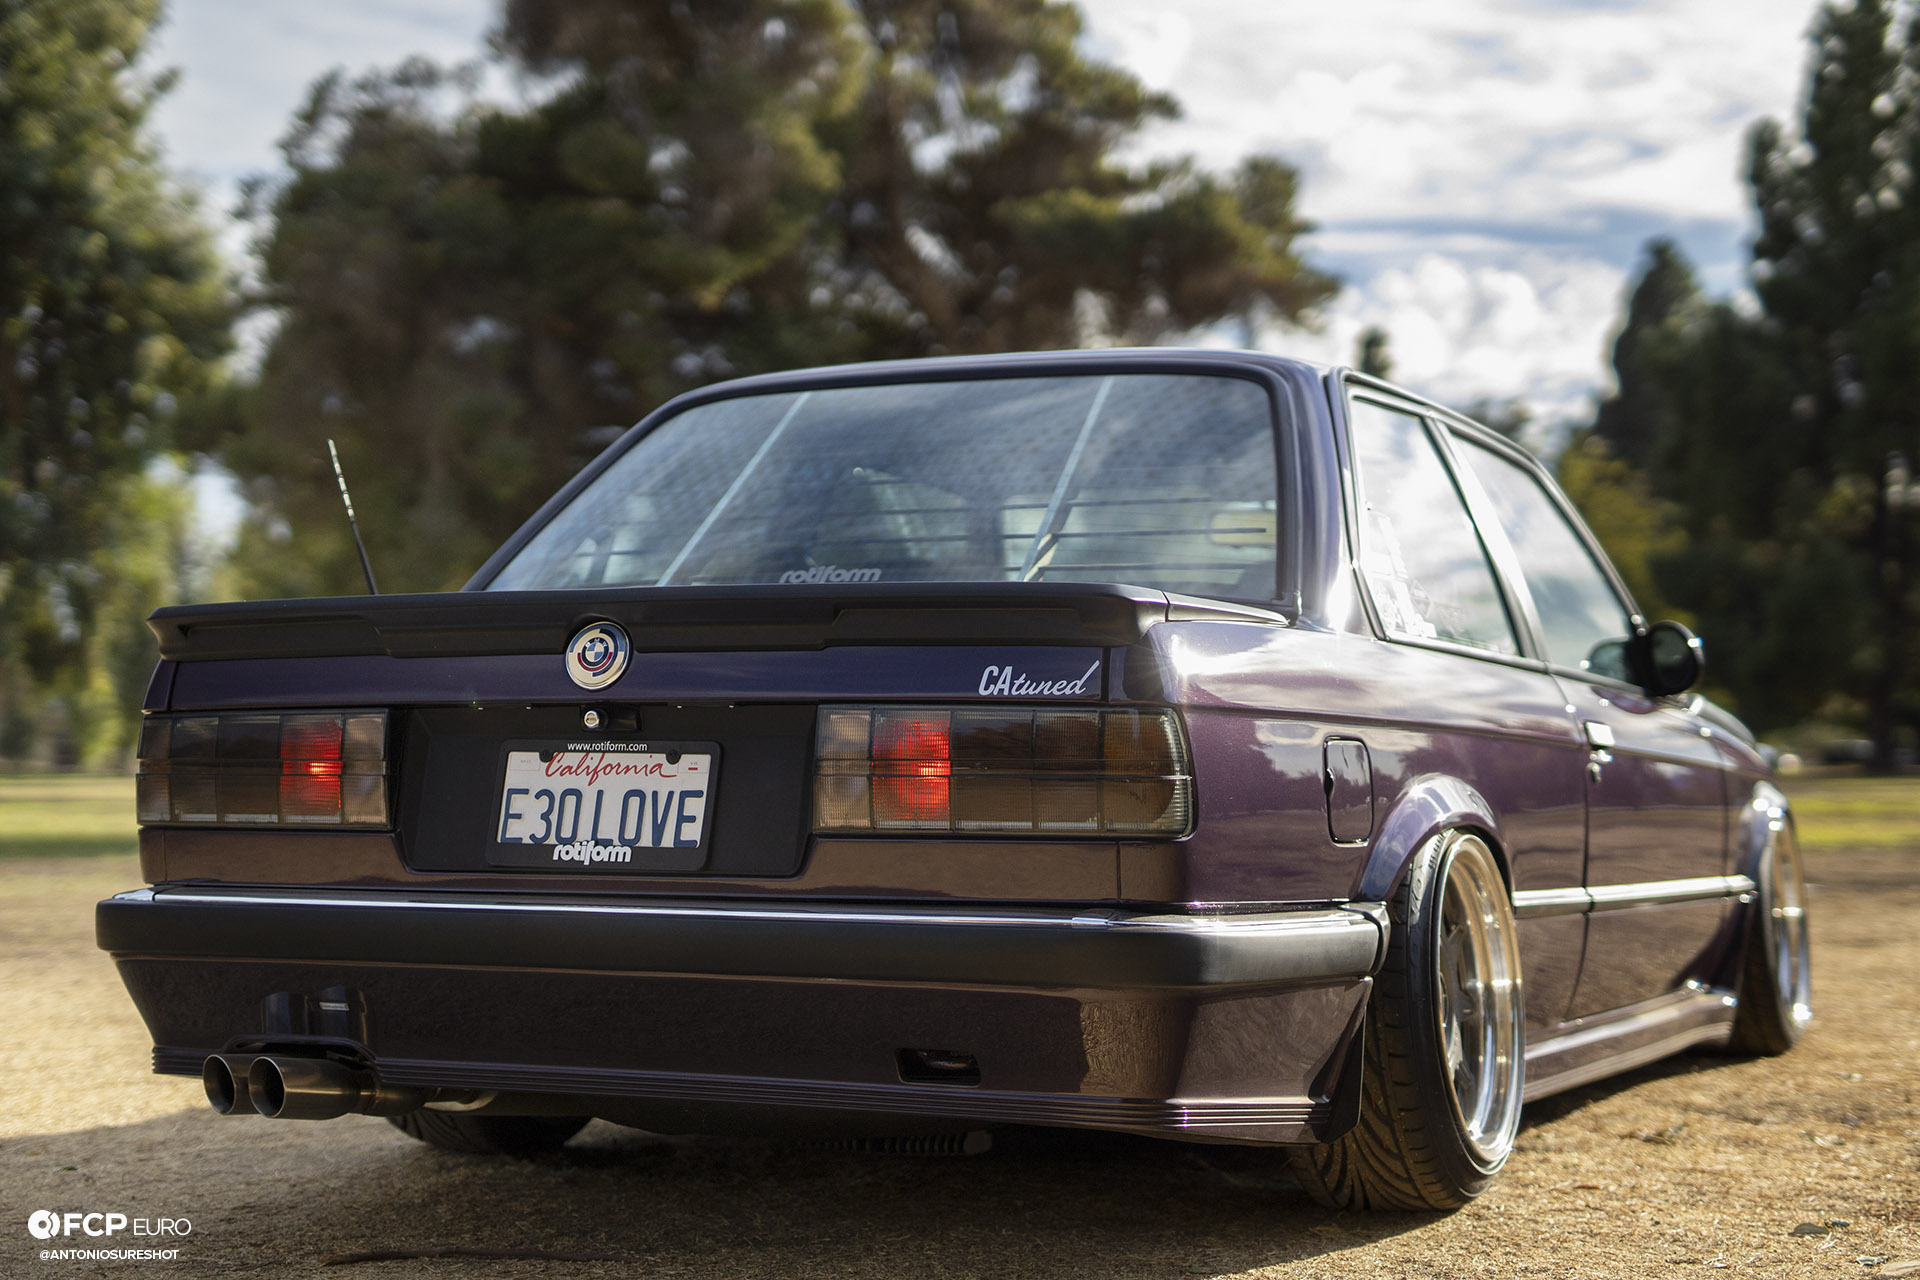 CAtuned Daytona Violet E30 BMW Rear Quarter